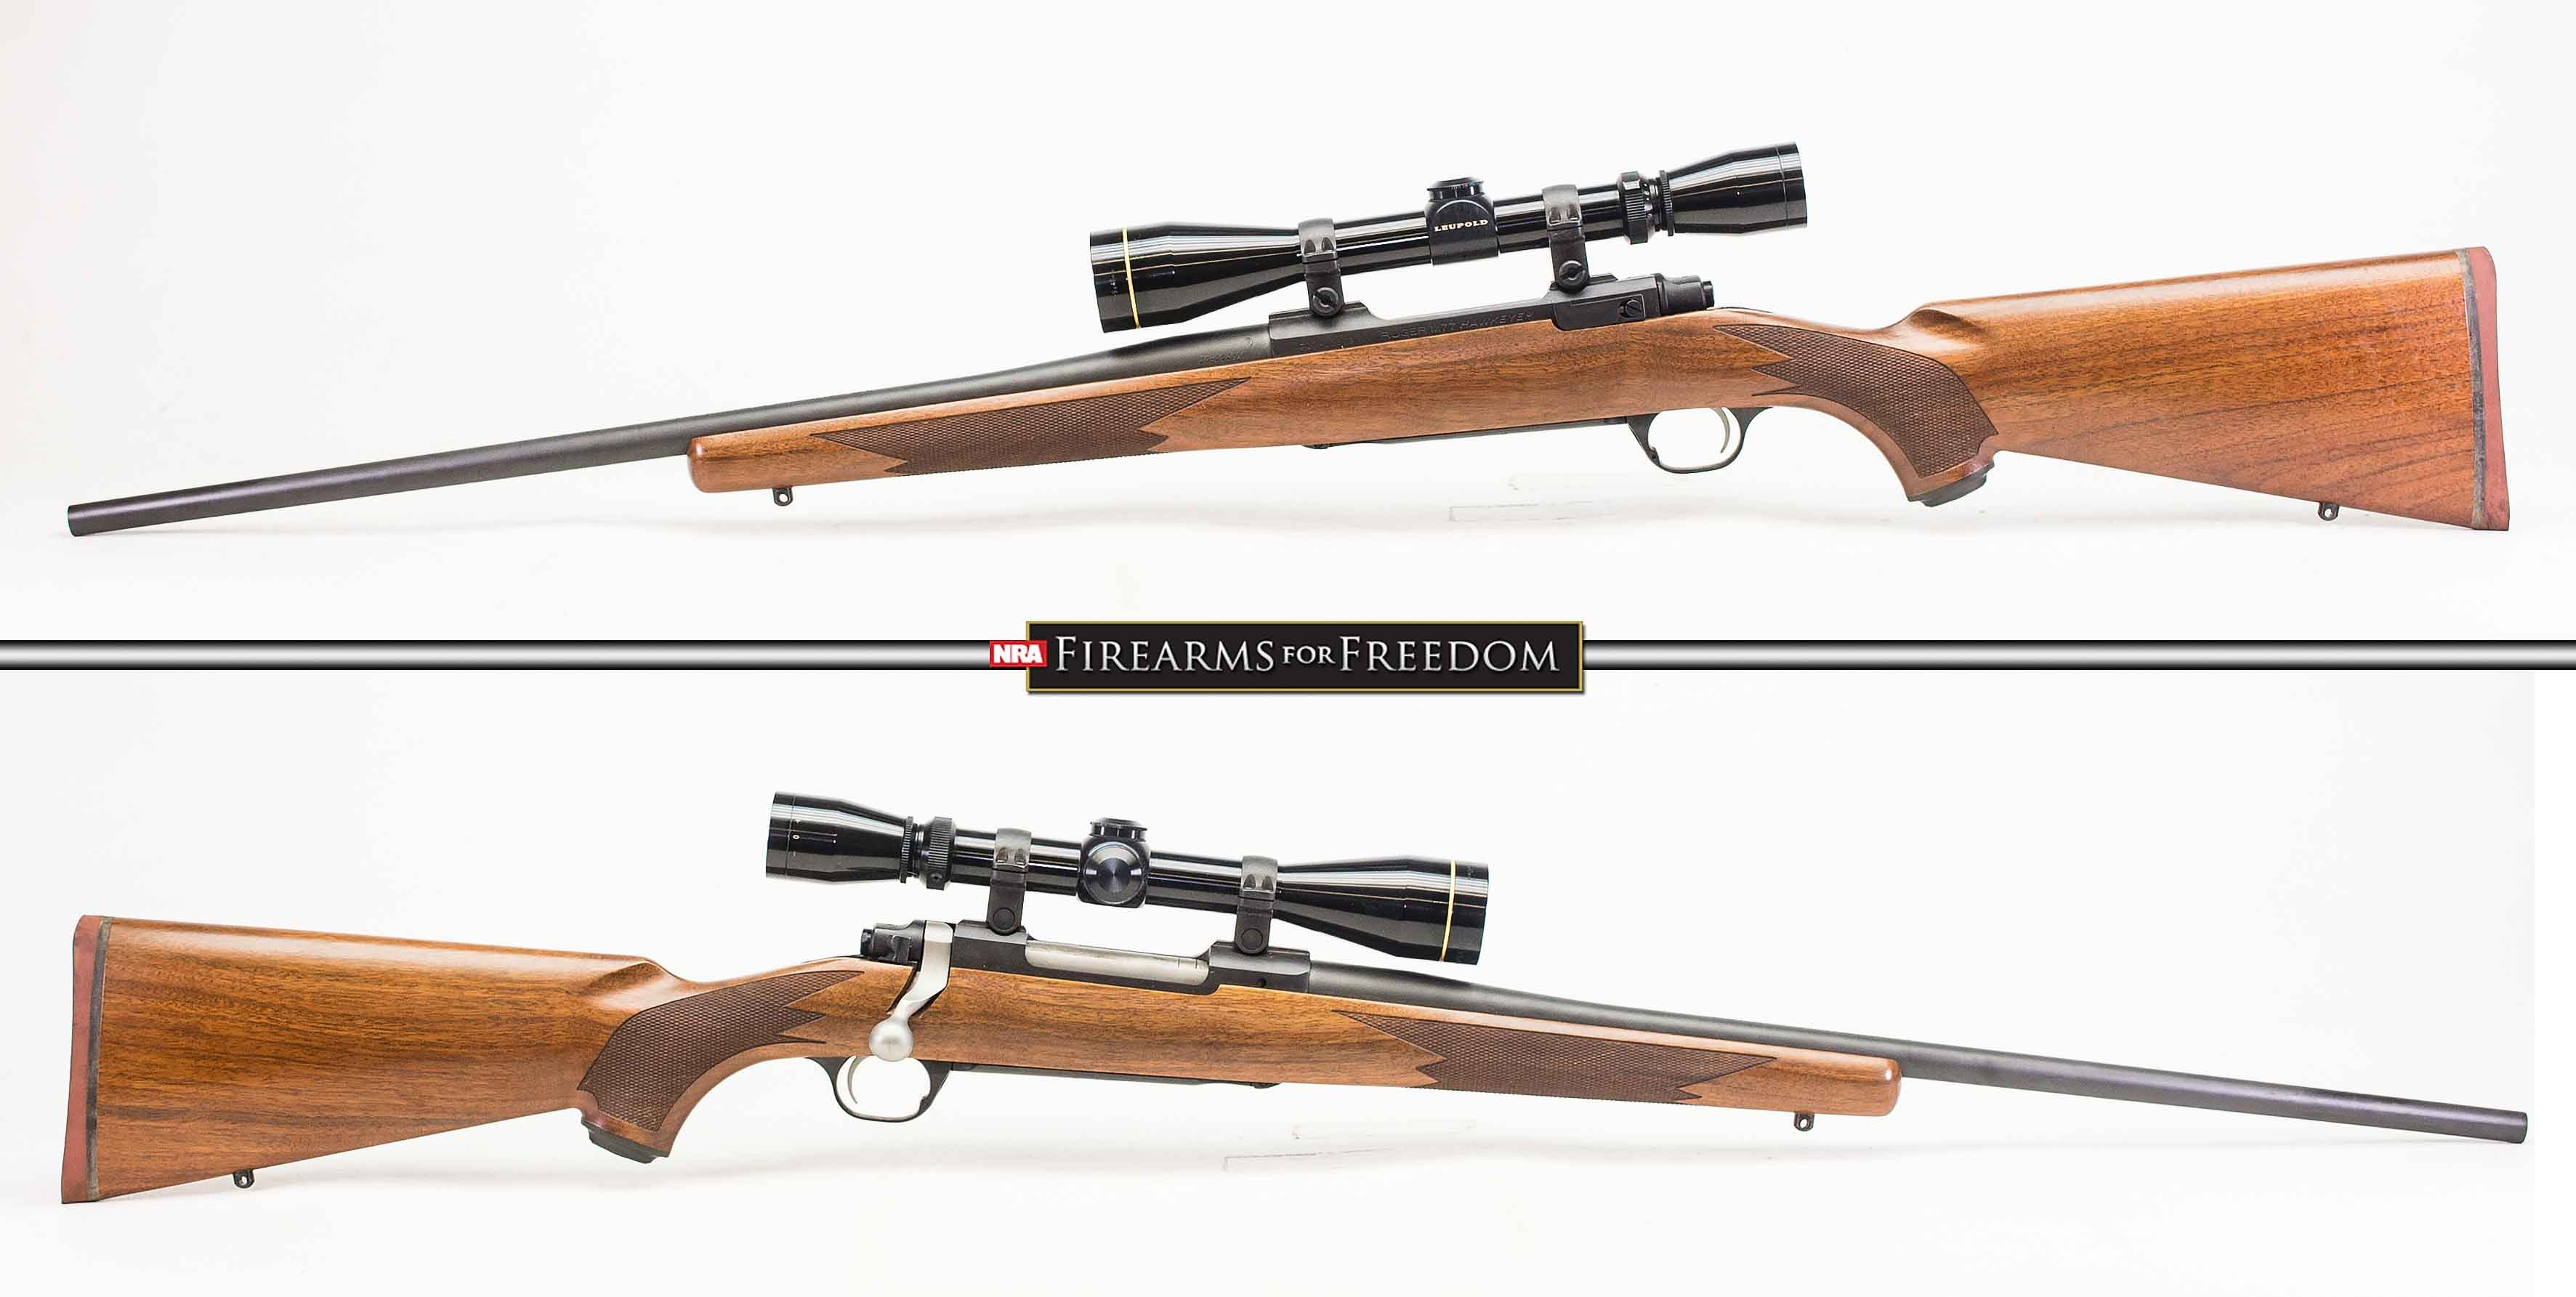 RUGER M77 HAWKEYE – 30-06 SPG (Auction ID: 12471921, End Time : Sep